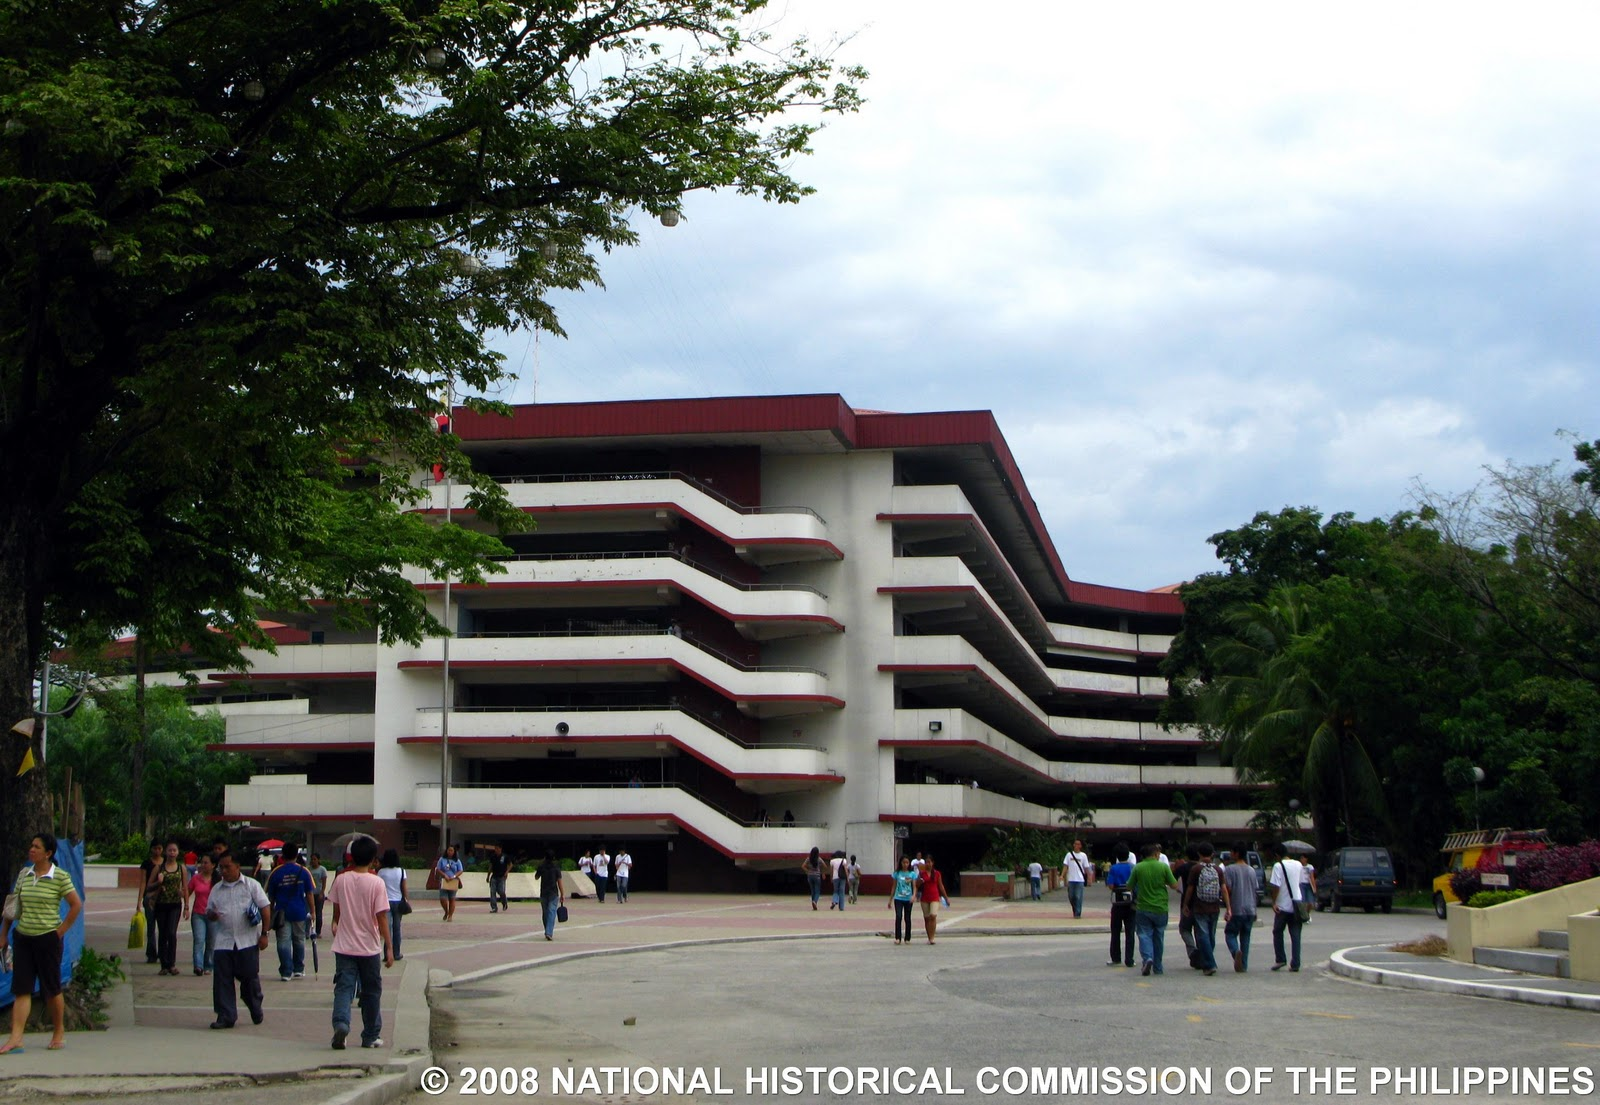 polytechnic university of the philippines Polytechnic university of the philippines - free download as word doc (doc / docx), pdf file (pdf), text file (txt) or read online for free.